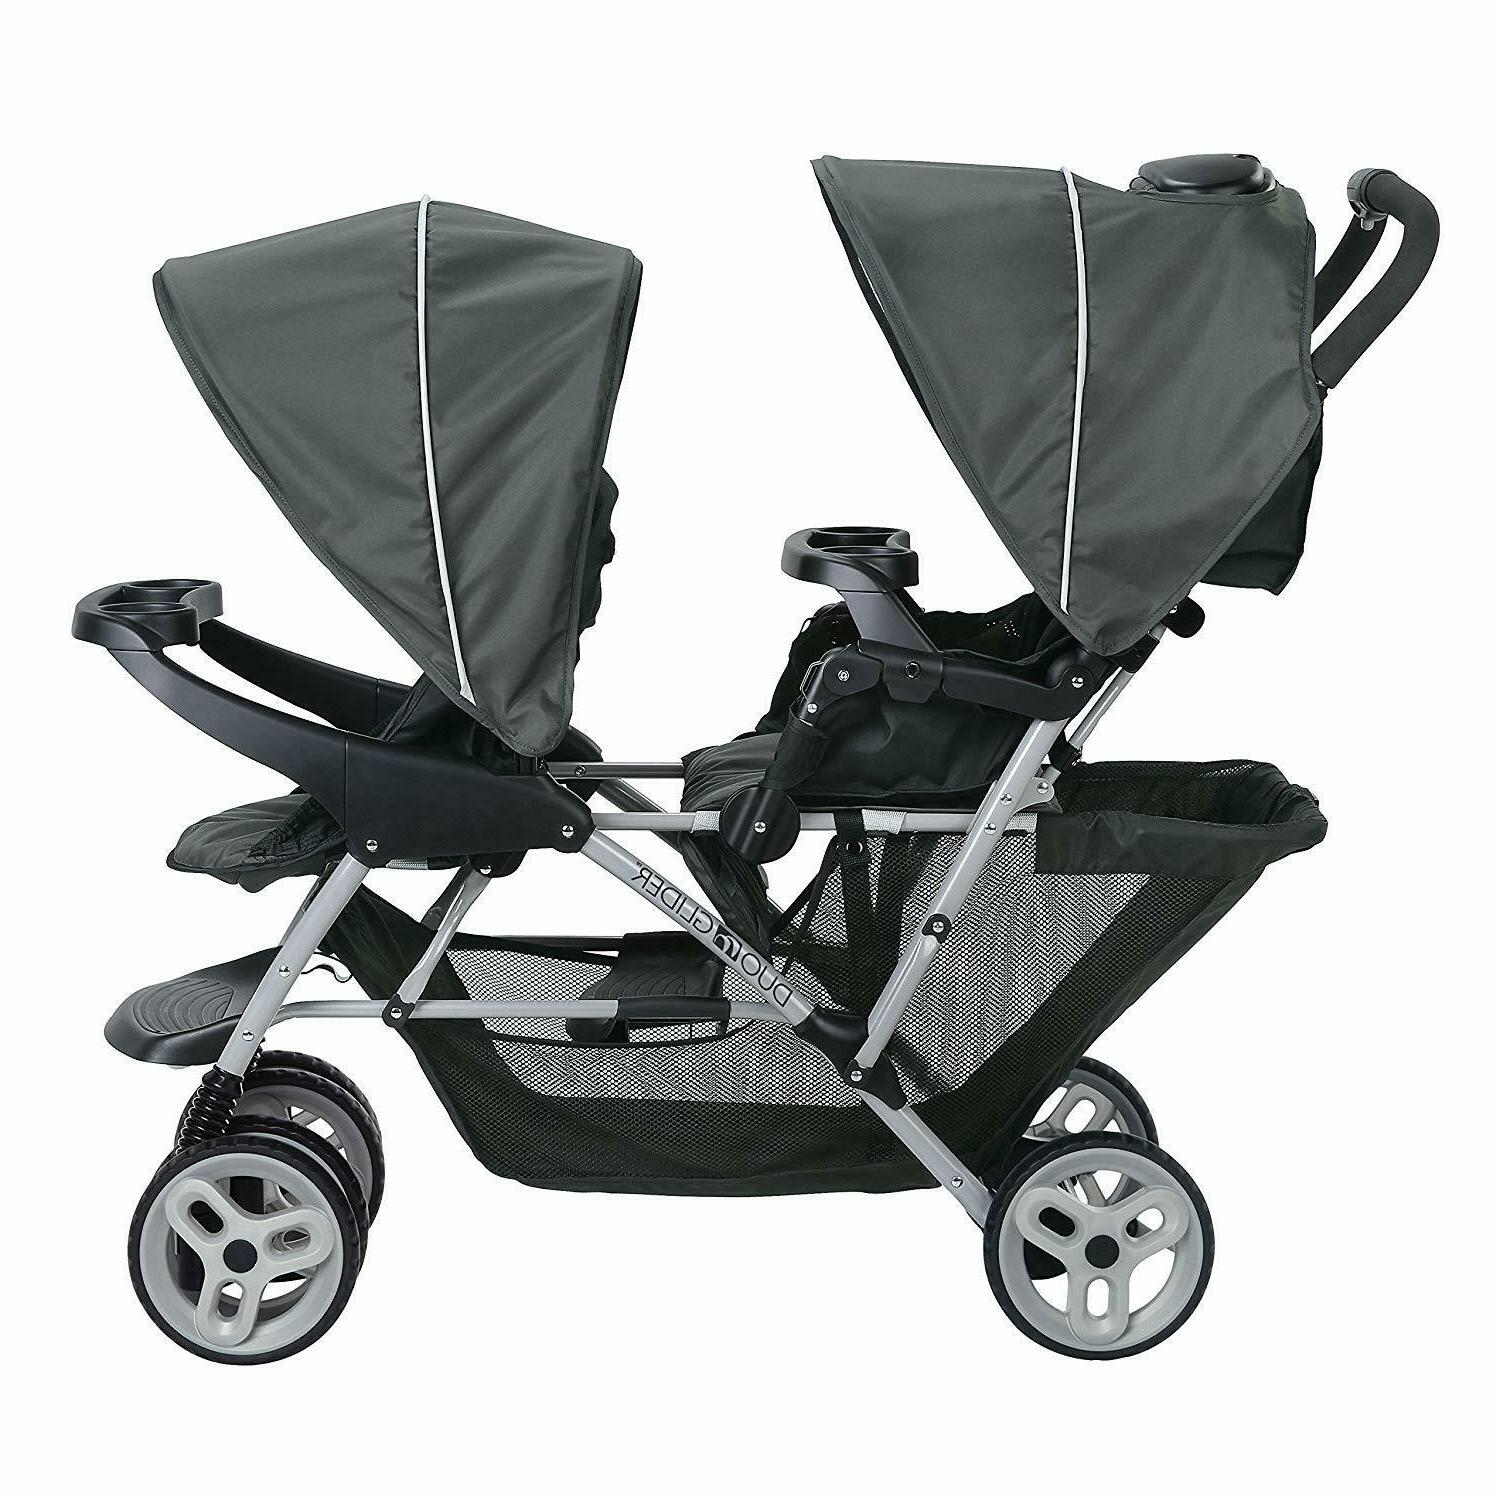 Graco Baby Infant Lightweight Double Stroller Buggy with Tandem Seating